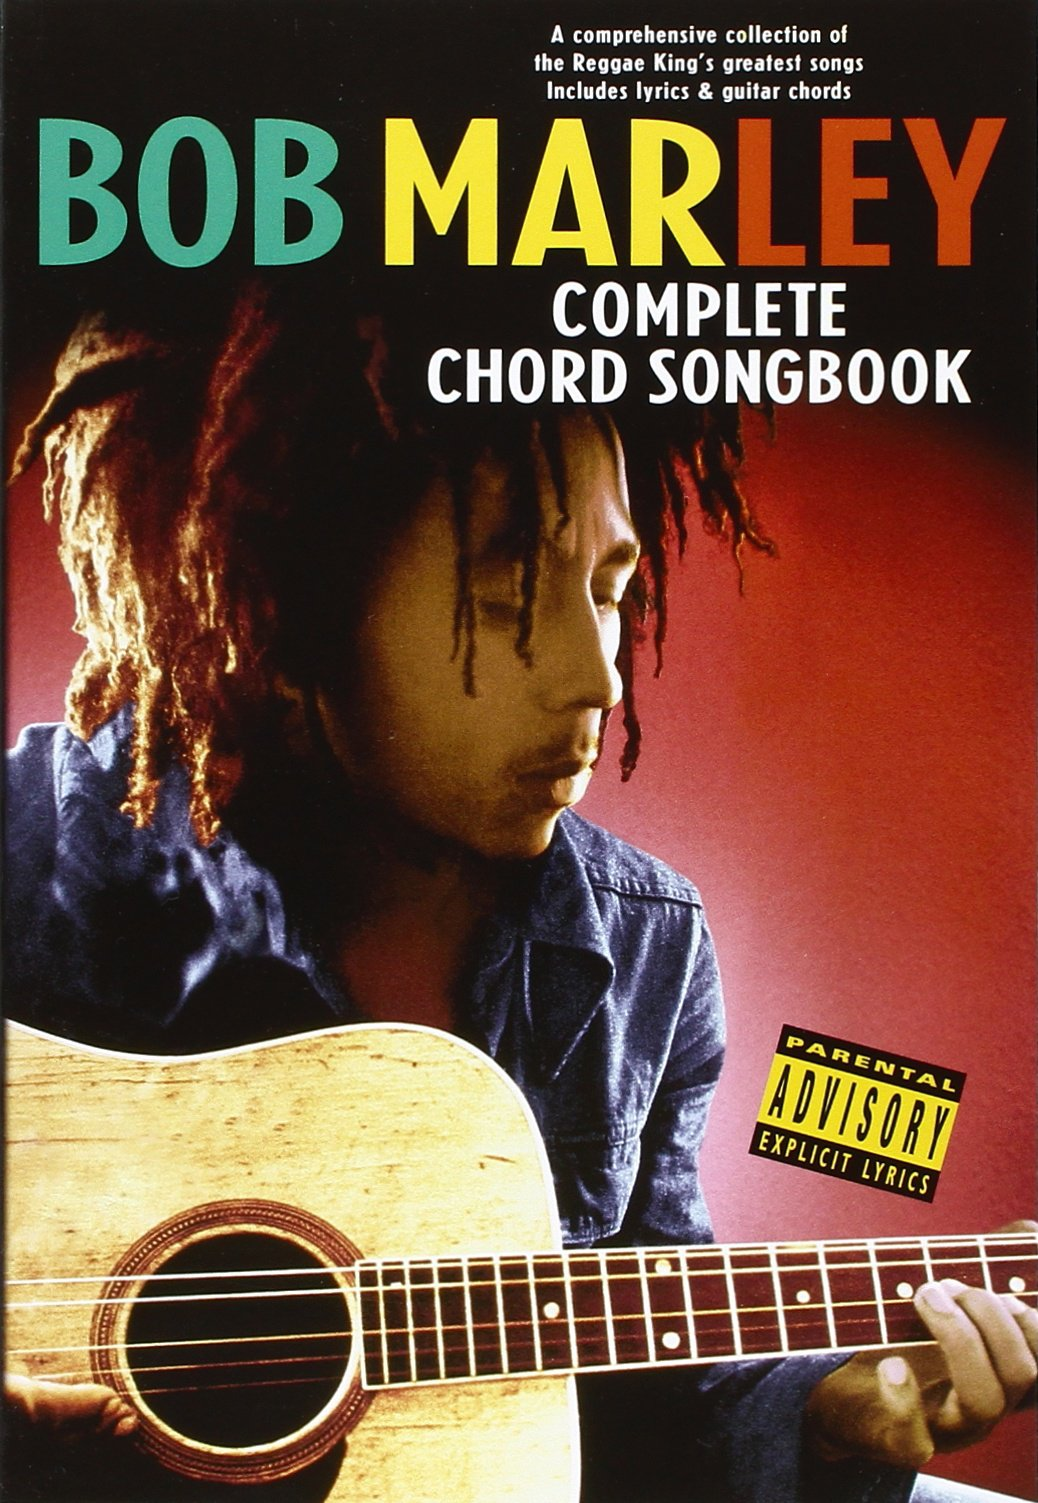 Bob Marley Complete Chord Songbook Unknown 9780711988507 Amazon